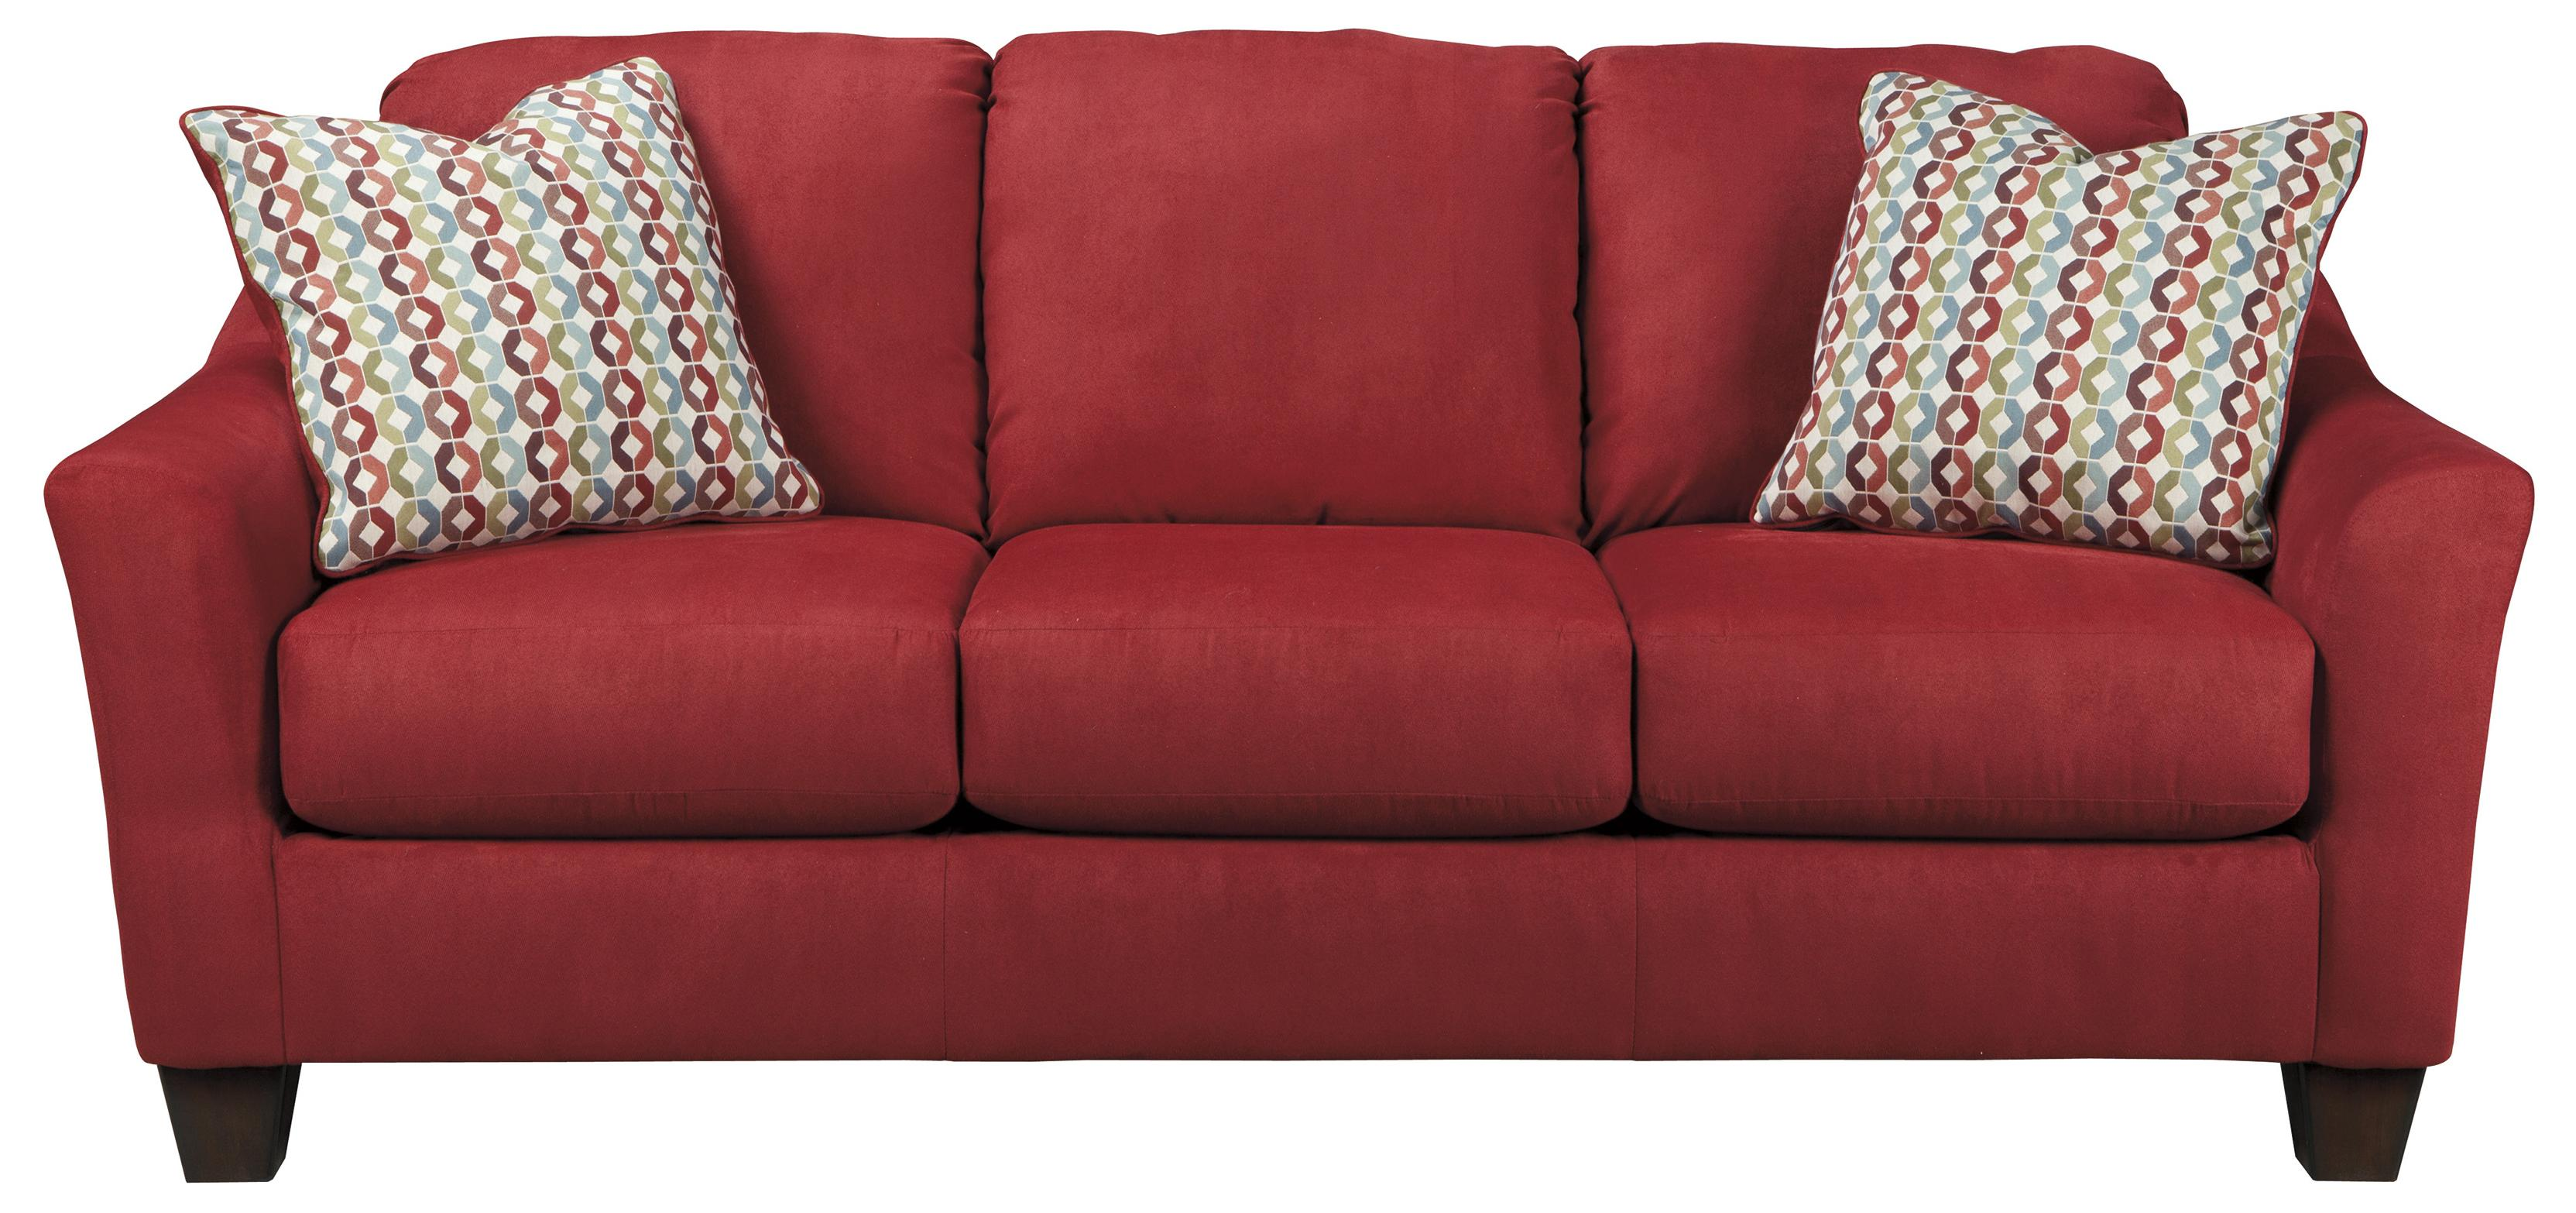 Signature Design by Ashley Hannin - Spice Sofa - Item Number: 9580138